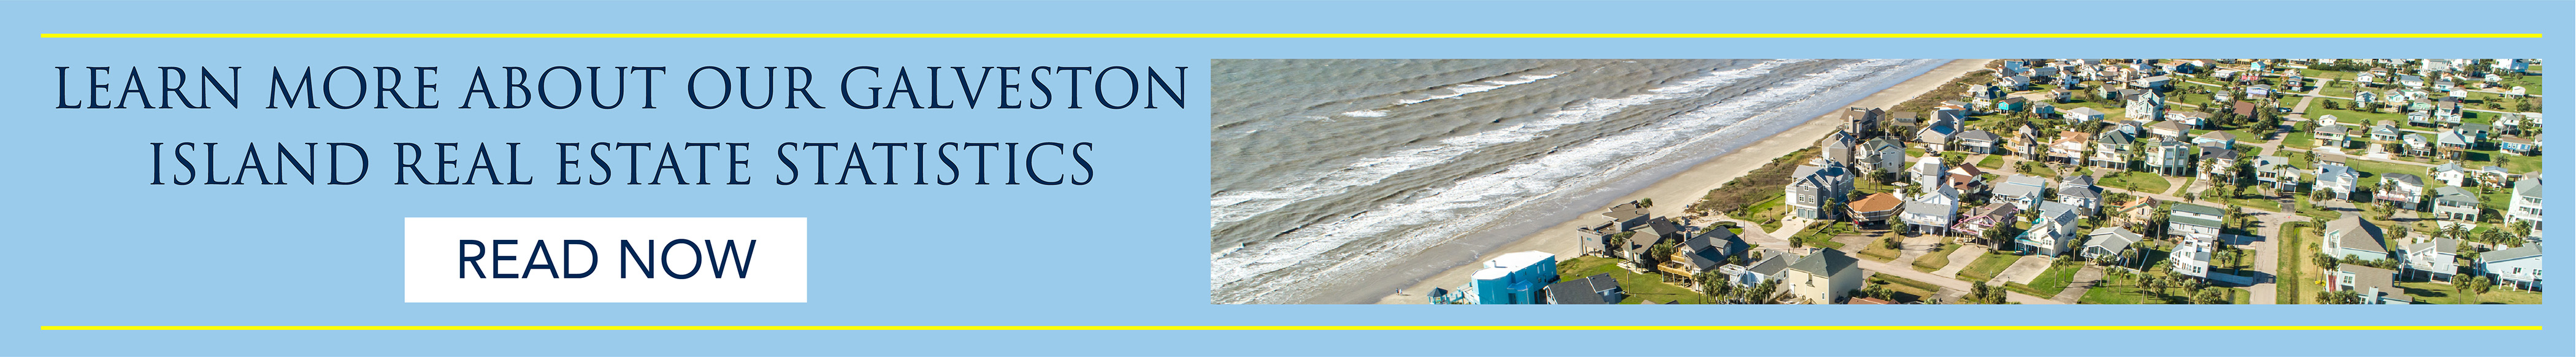 banner image learn more about our galveston island real estate statistics